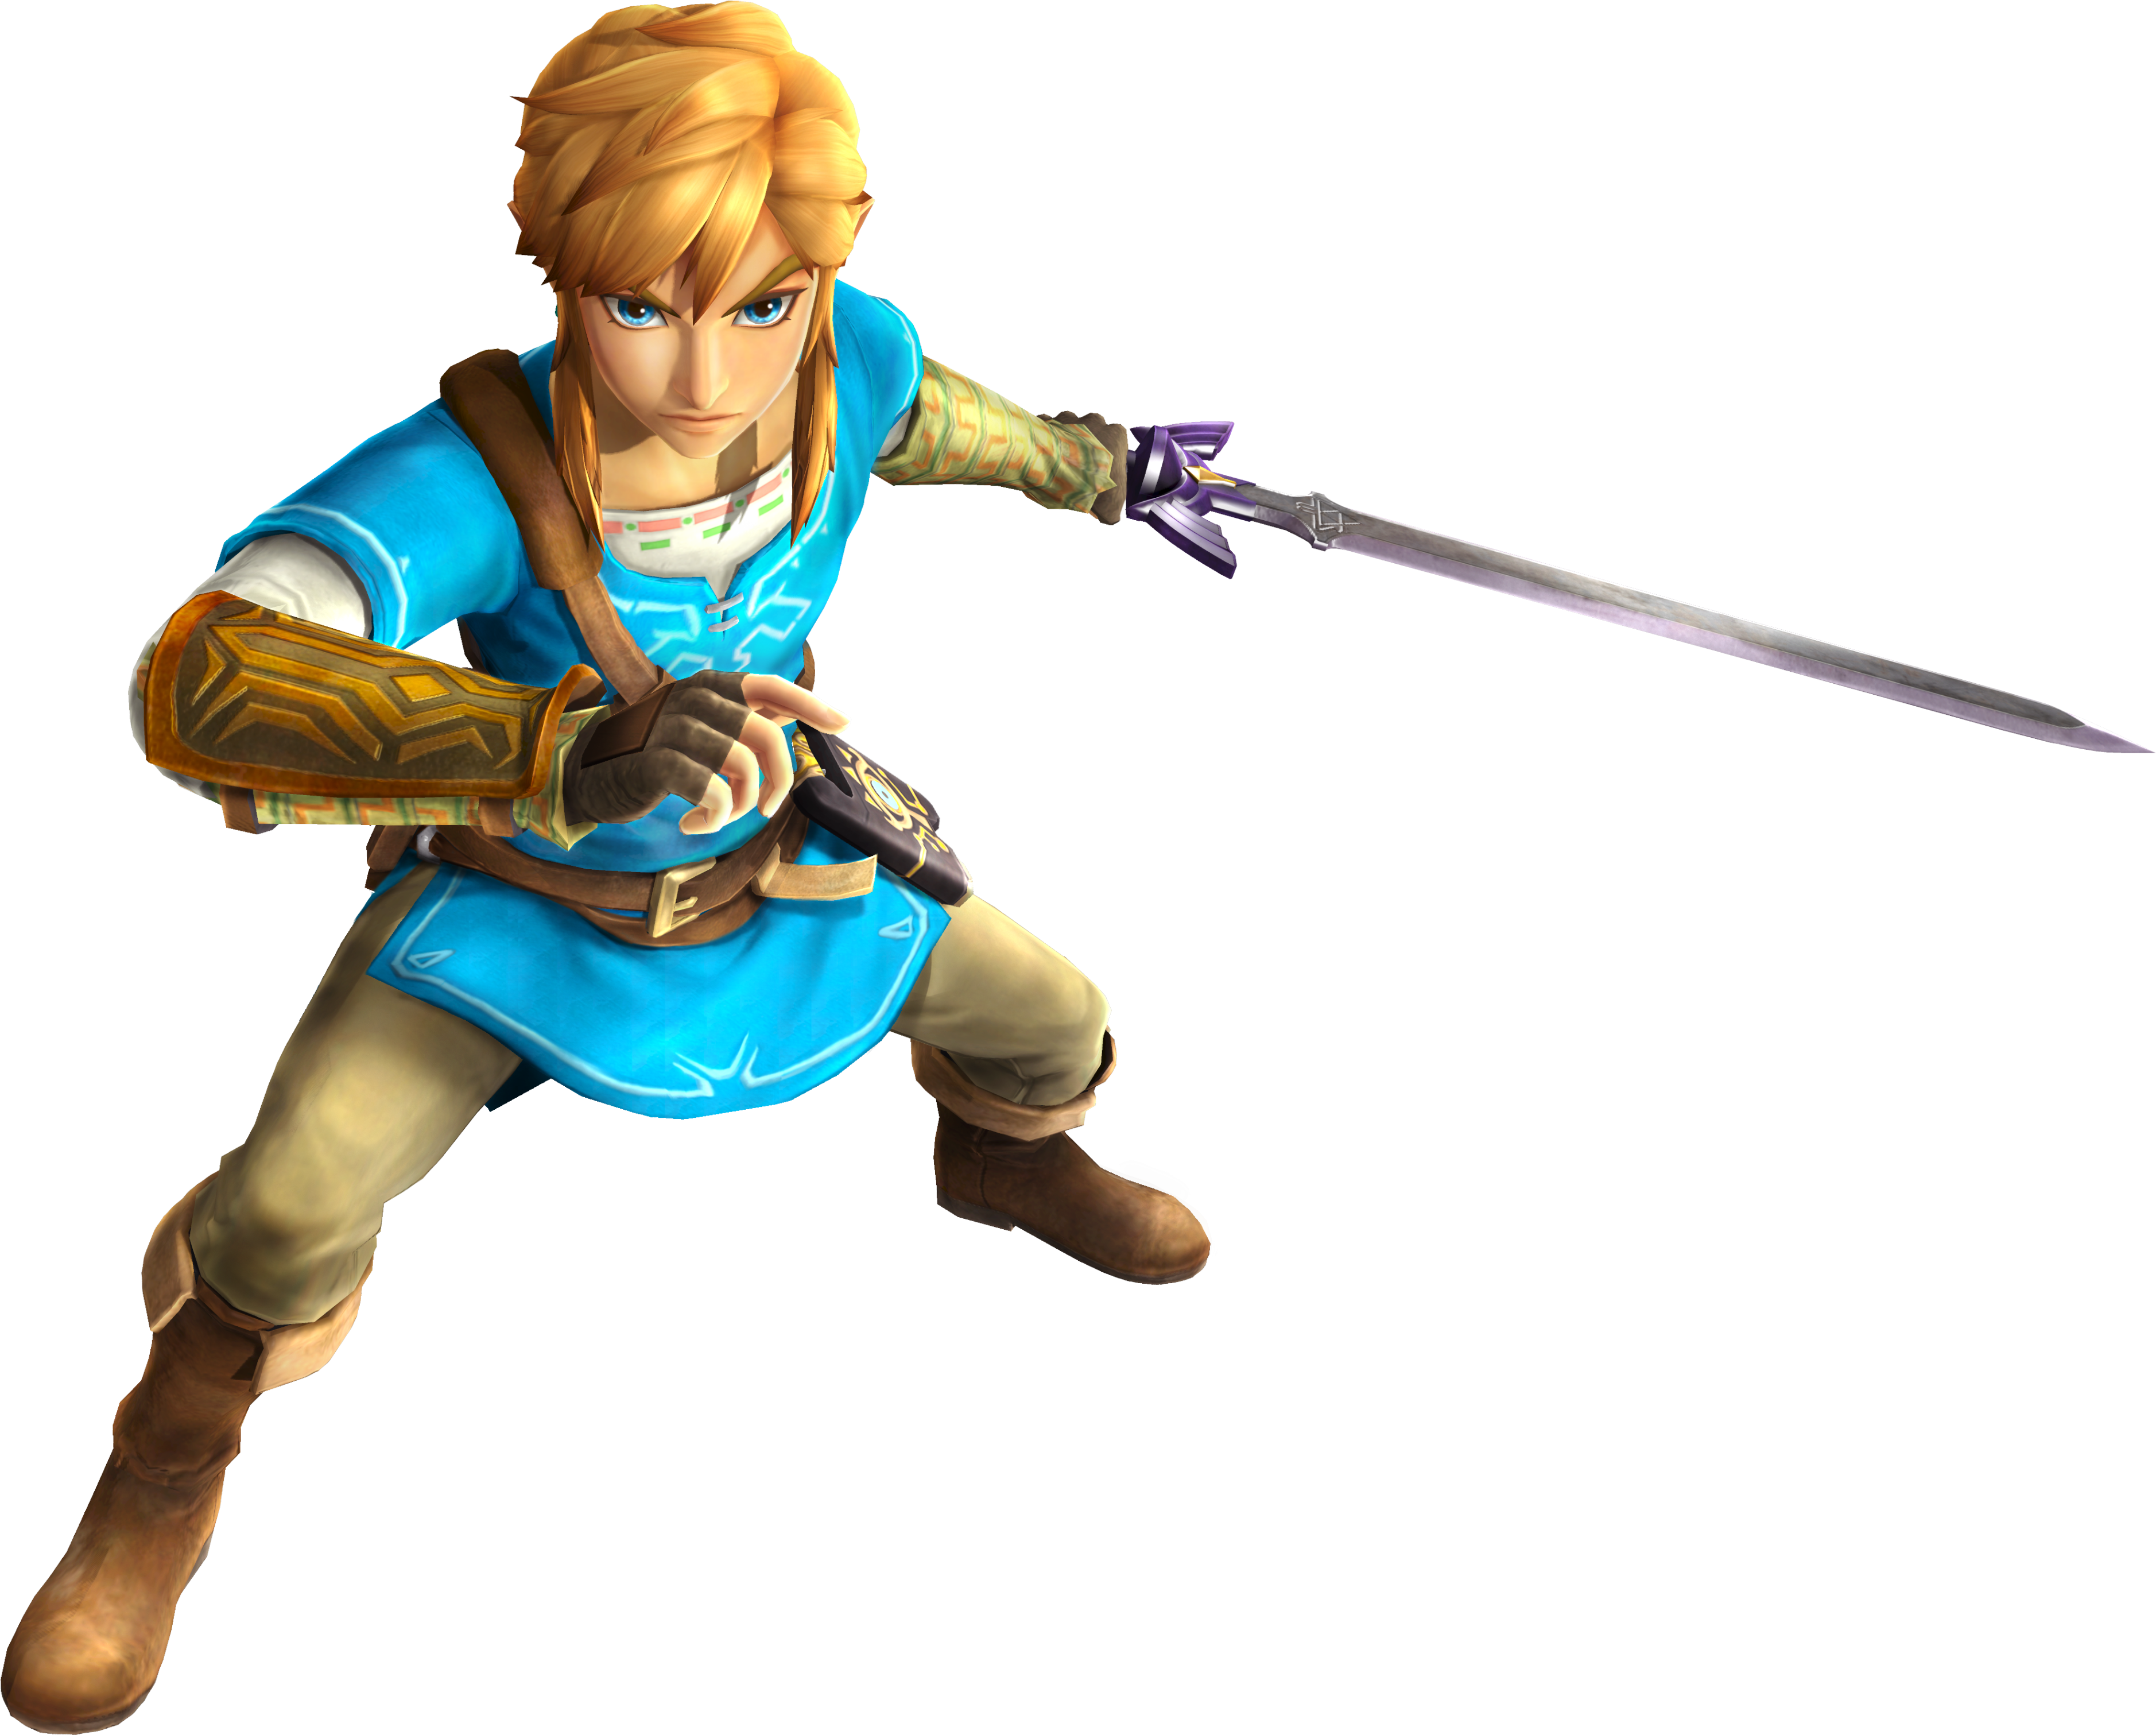 Definitive Edition Hyrule Warriors Definitive Edition Botw Link Full Size Png Download Seekpng